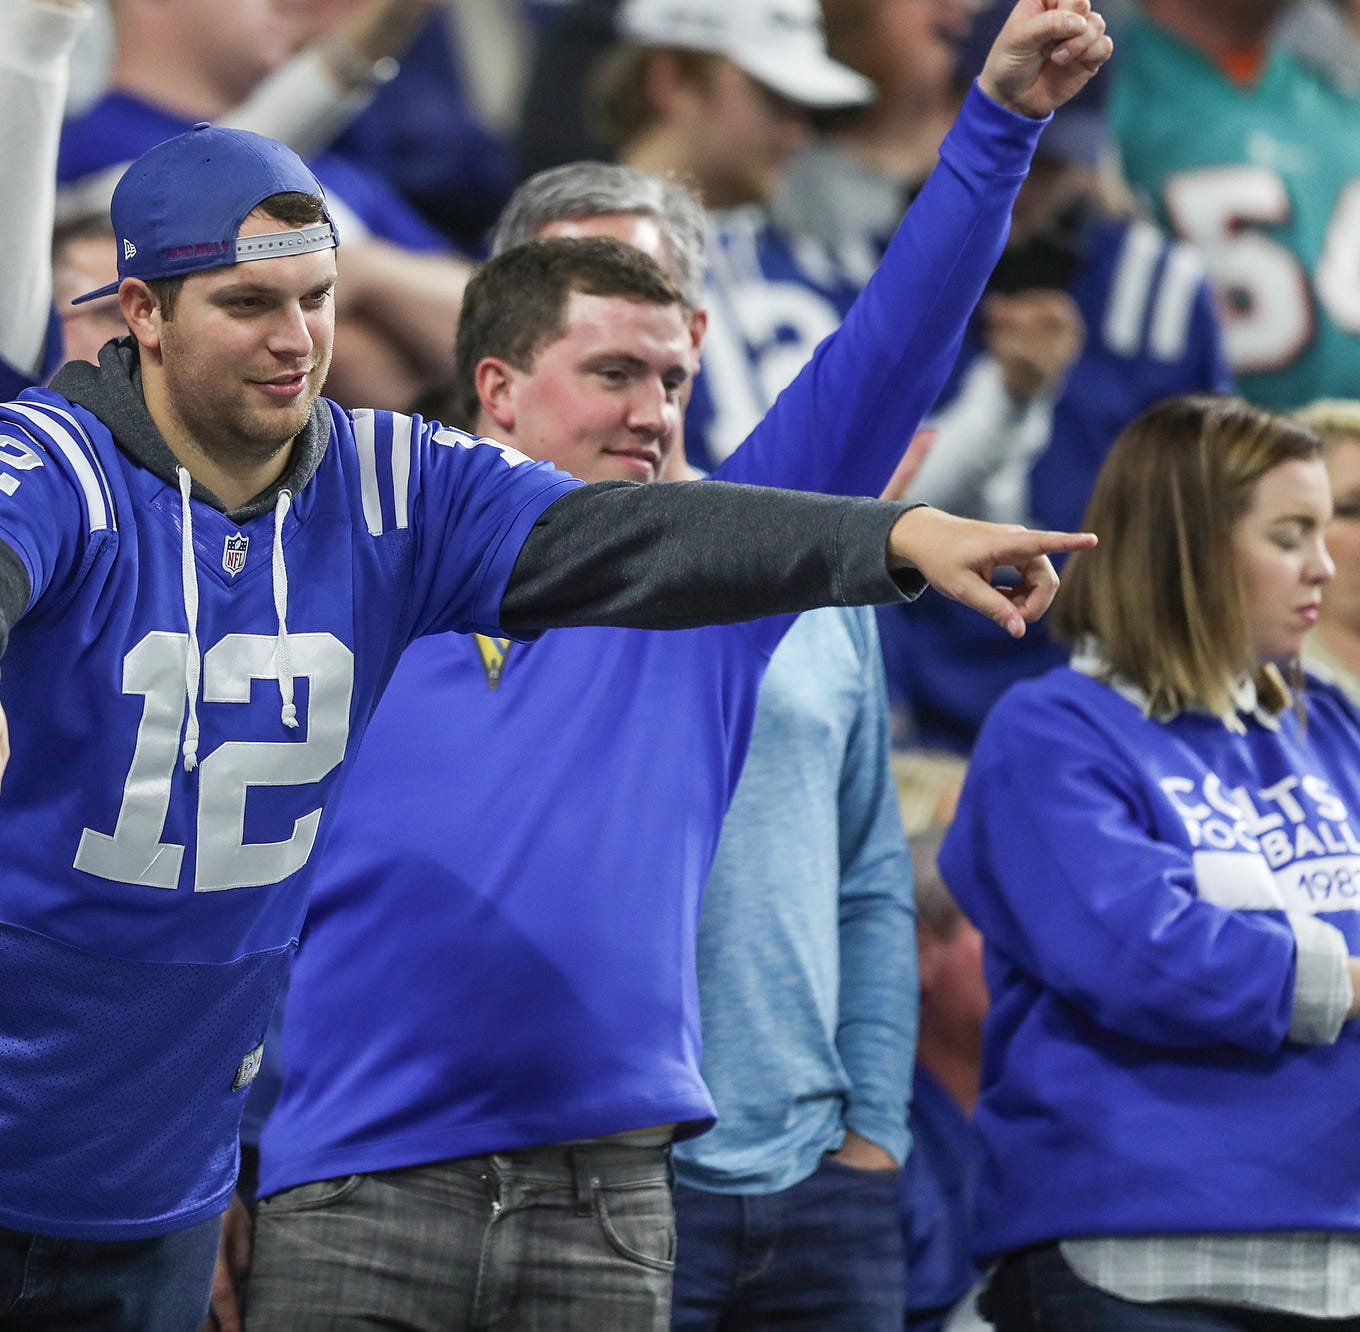 Colts 2019 season tickets renewal way ahead of last season's pace